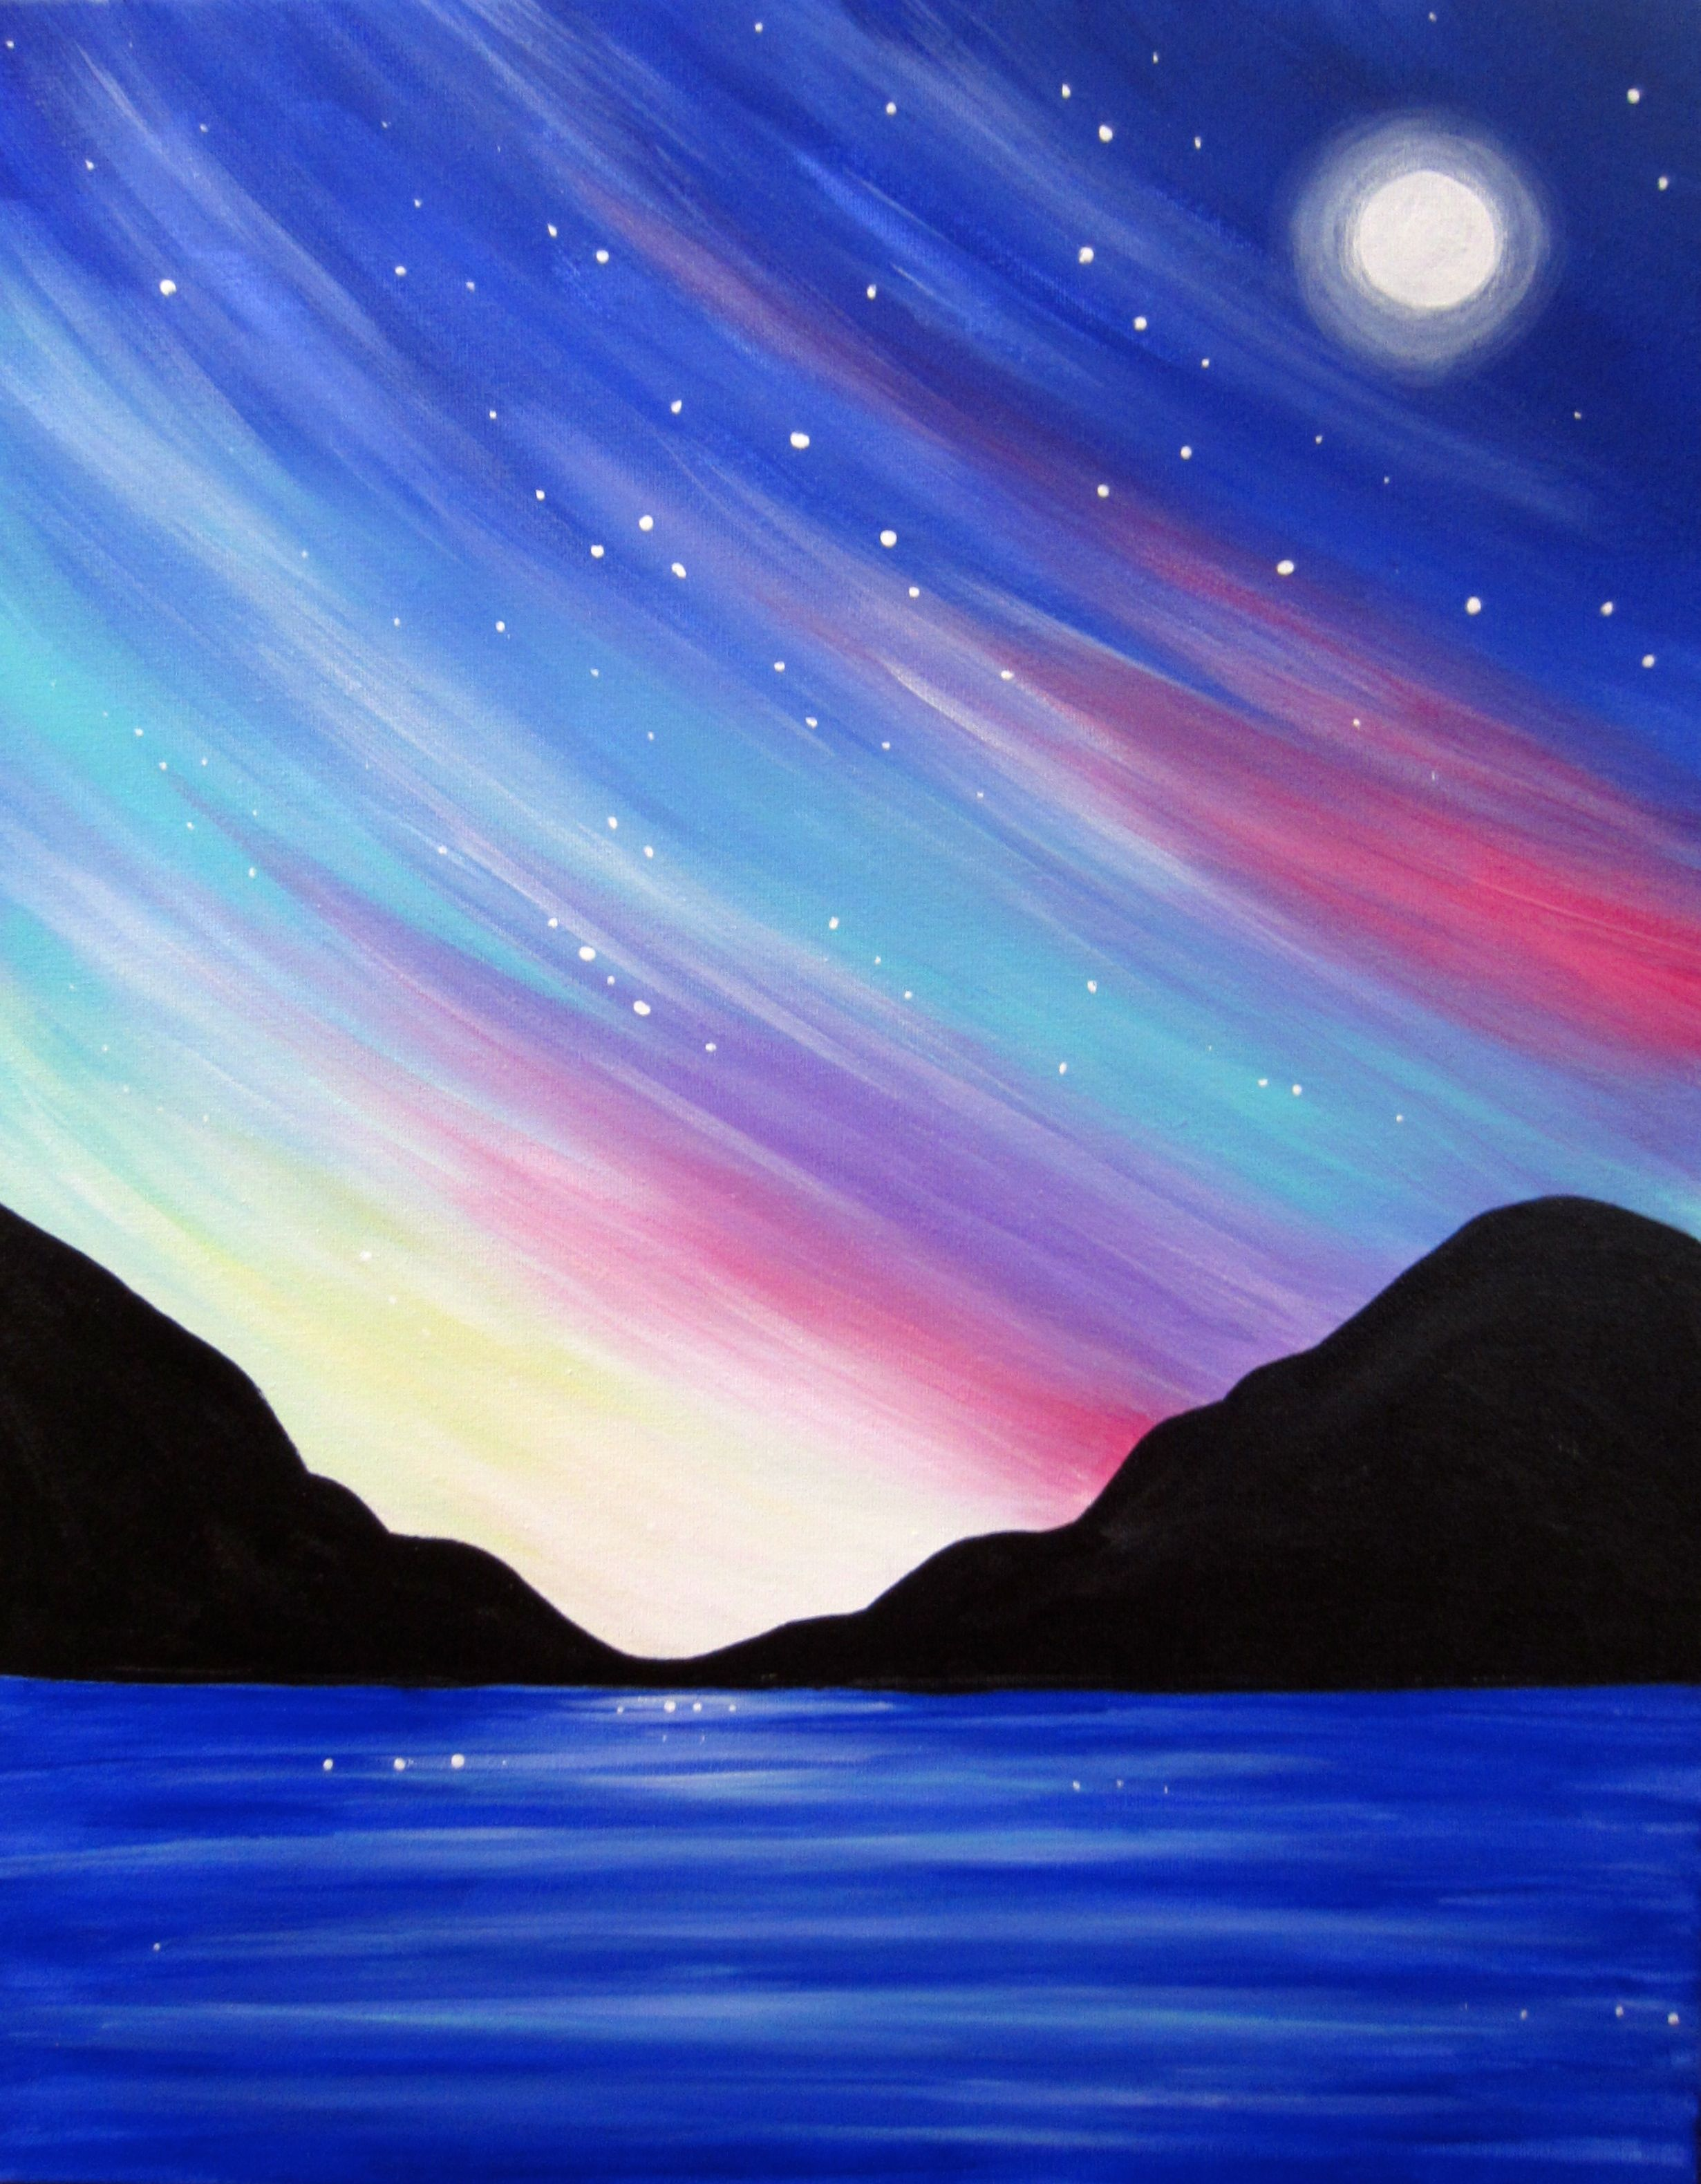 Can't wait to paint this Celestial Seascape with Lori next ...